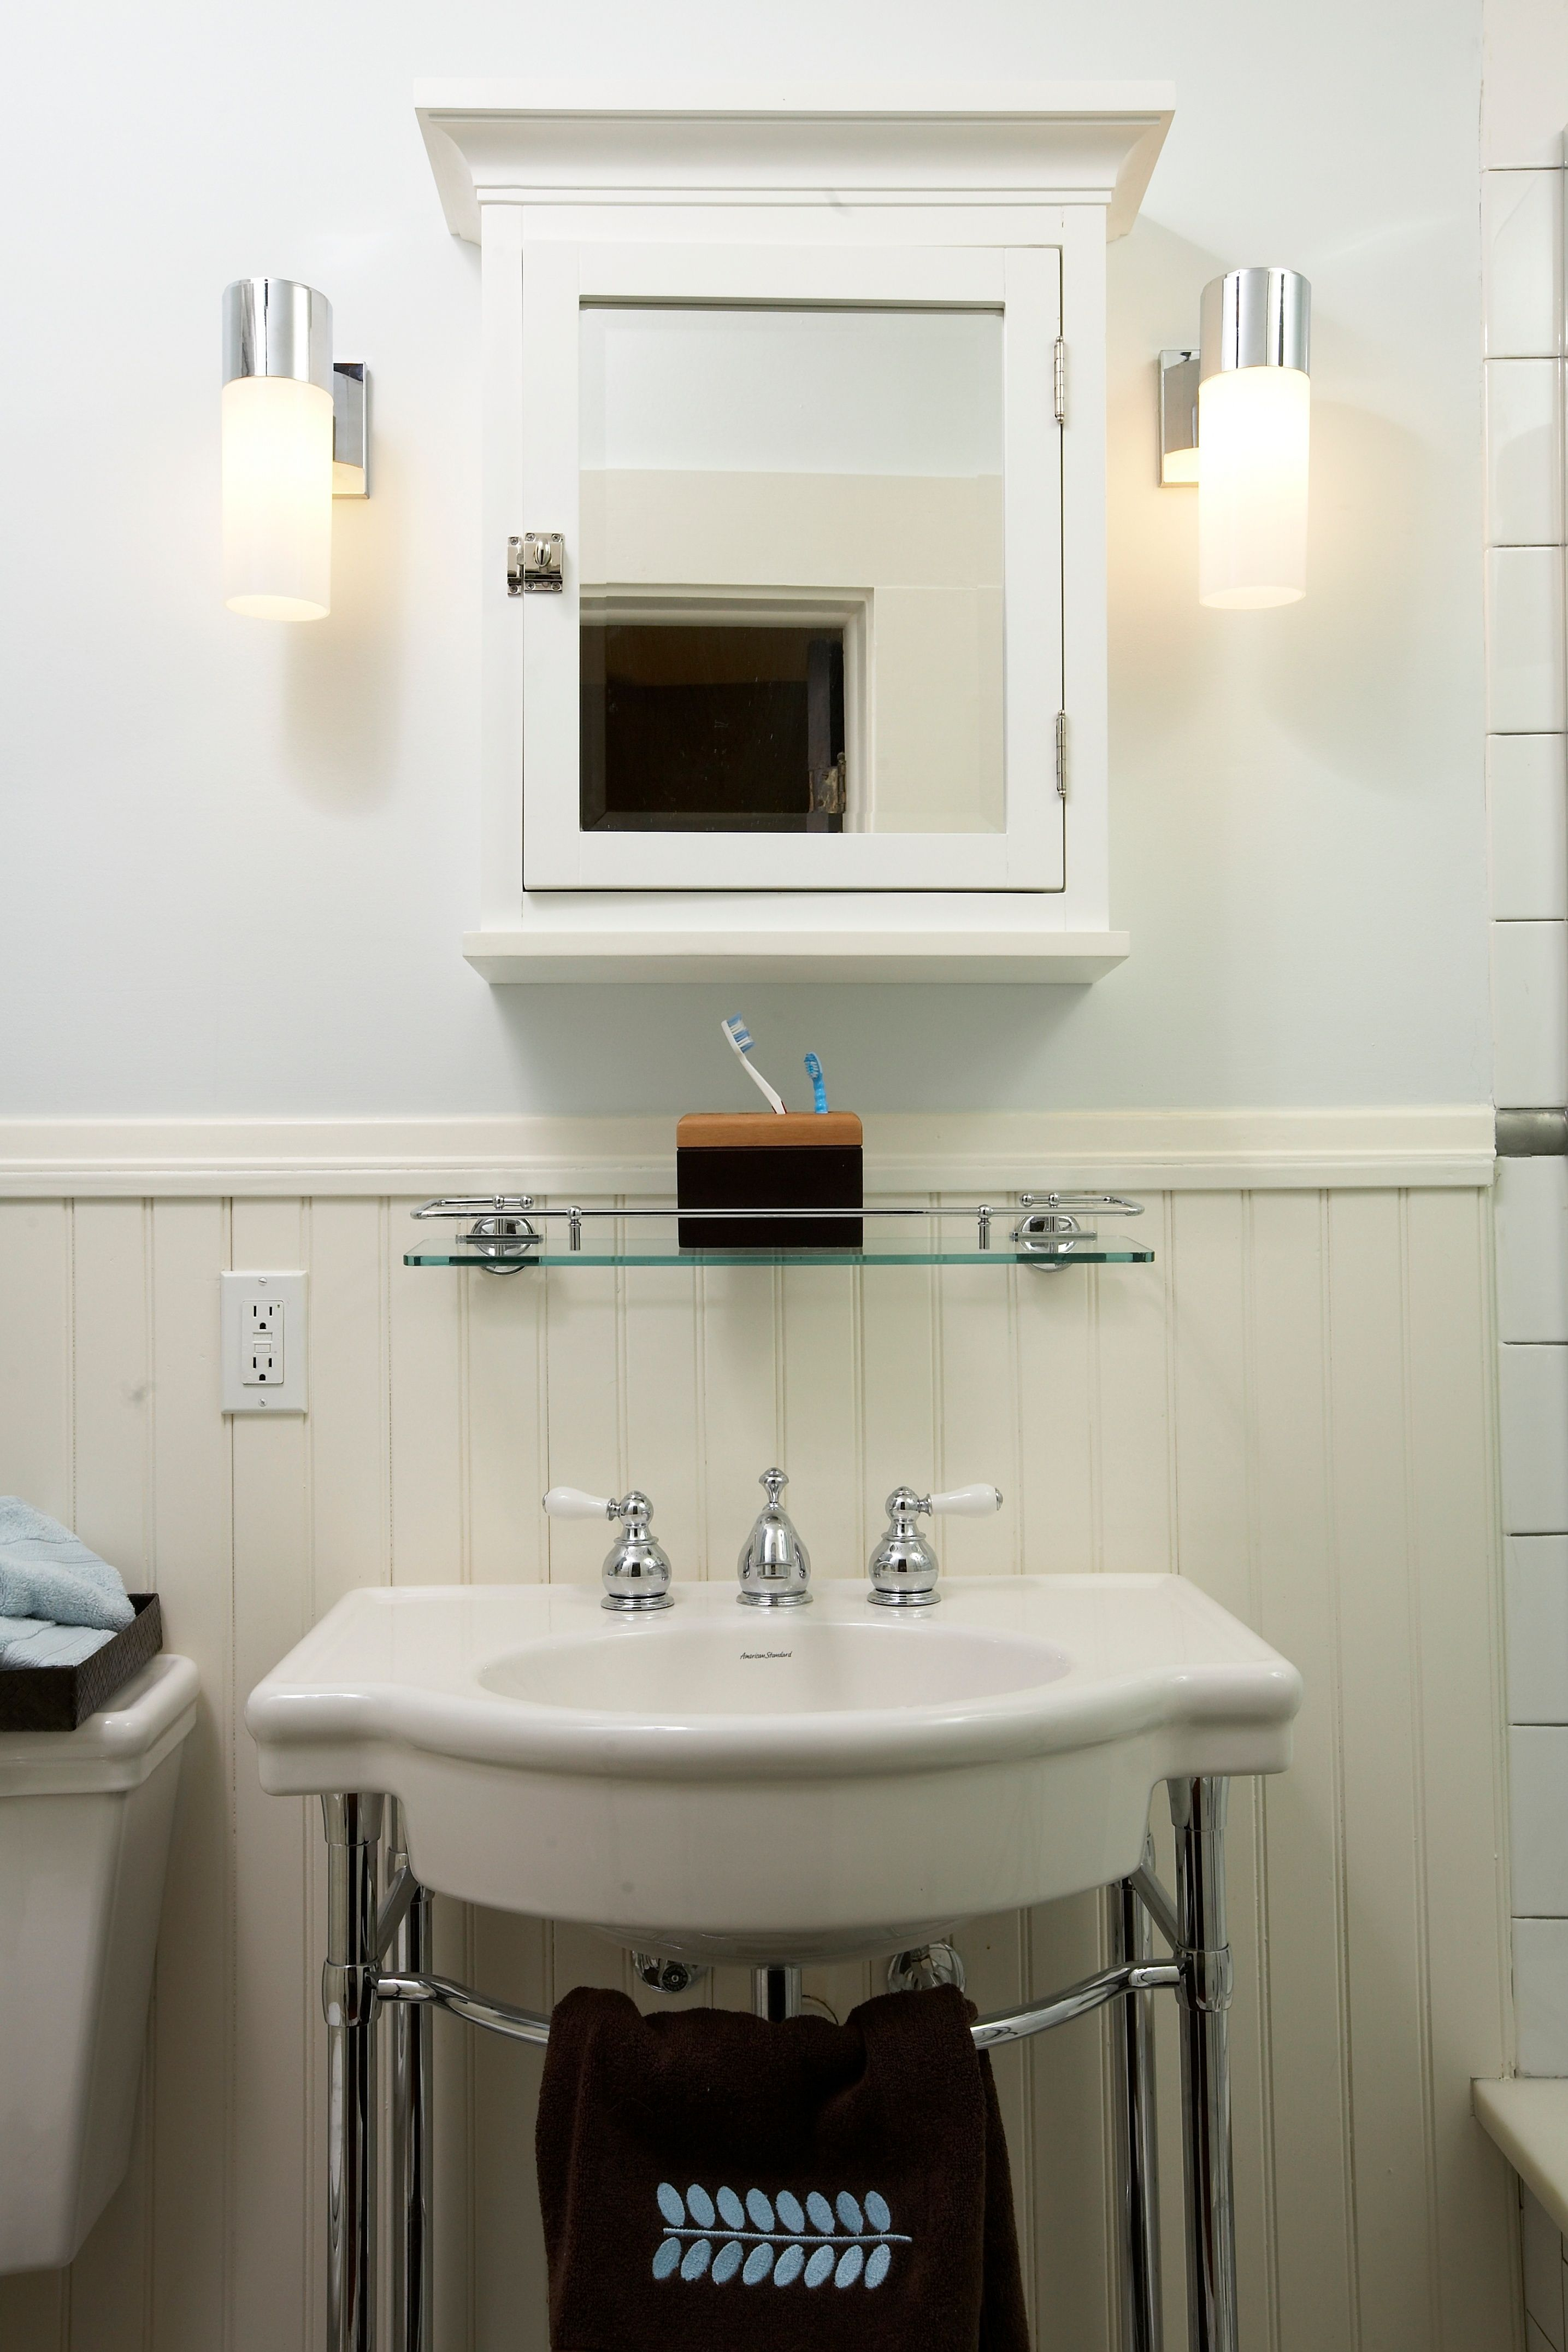 S Art Deco Styled Bath Completed Projects Pinterest Art - 1920s bathroom remodel